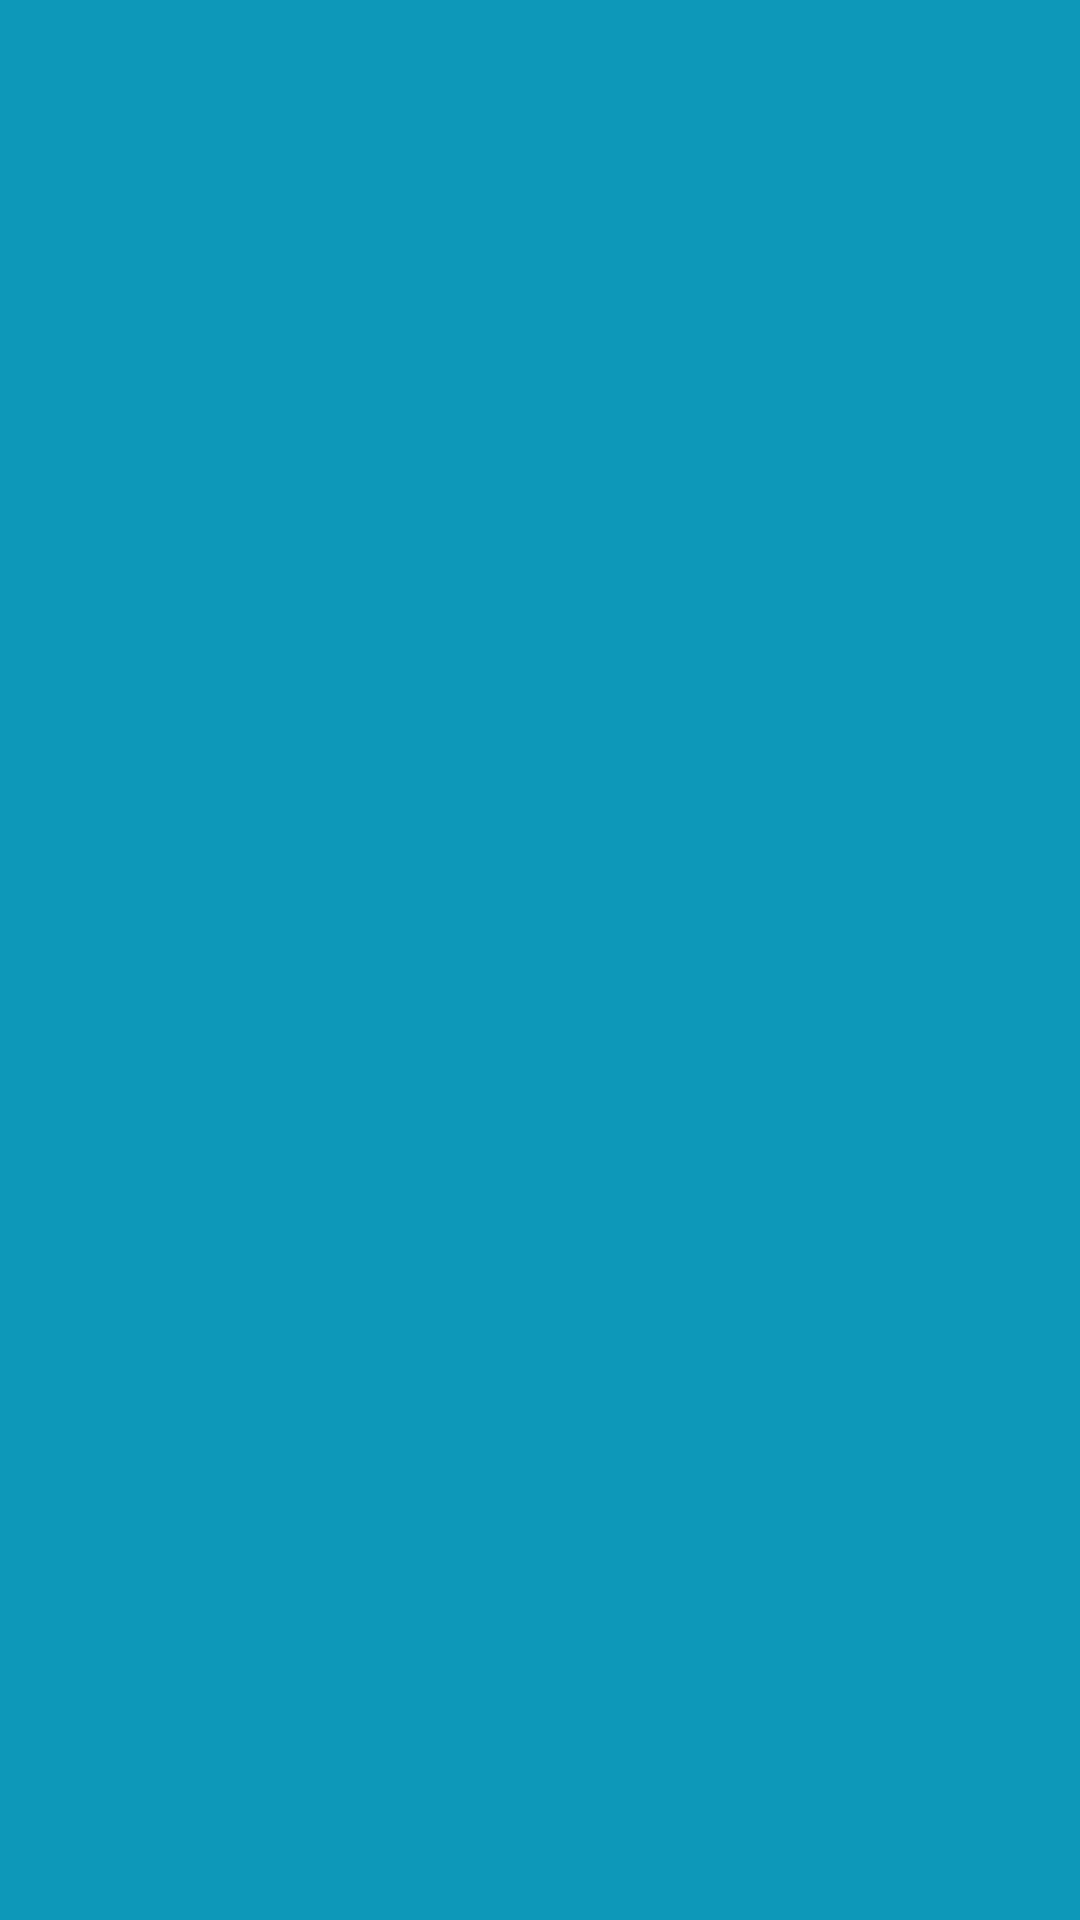 1080x1920 Blue-green Solid Color Background